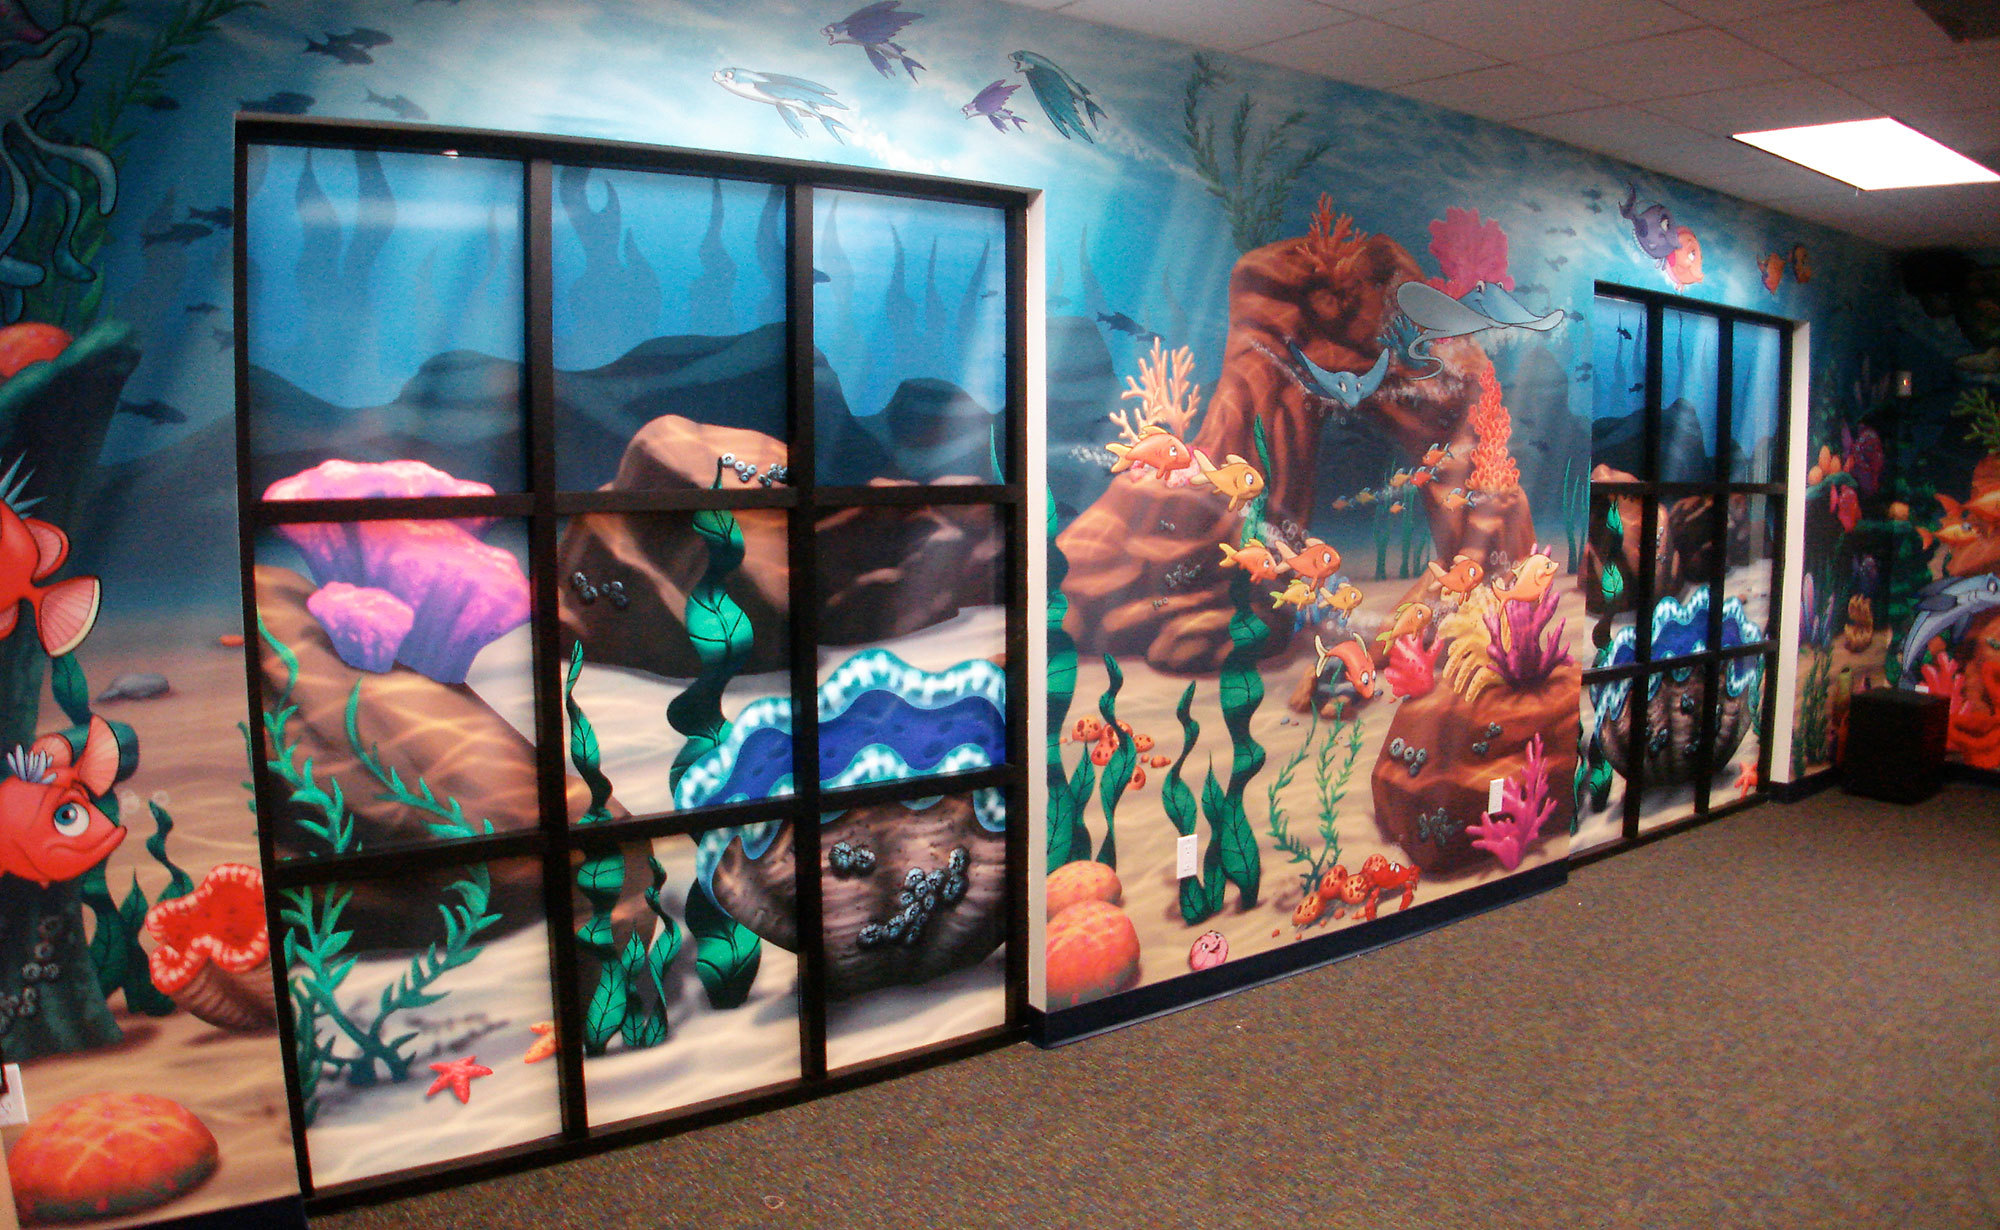 Example of Undersea Themed Window Vinyl with Wall Covering at a Church